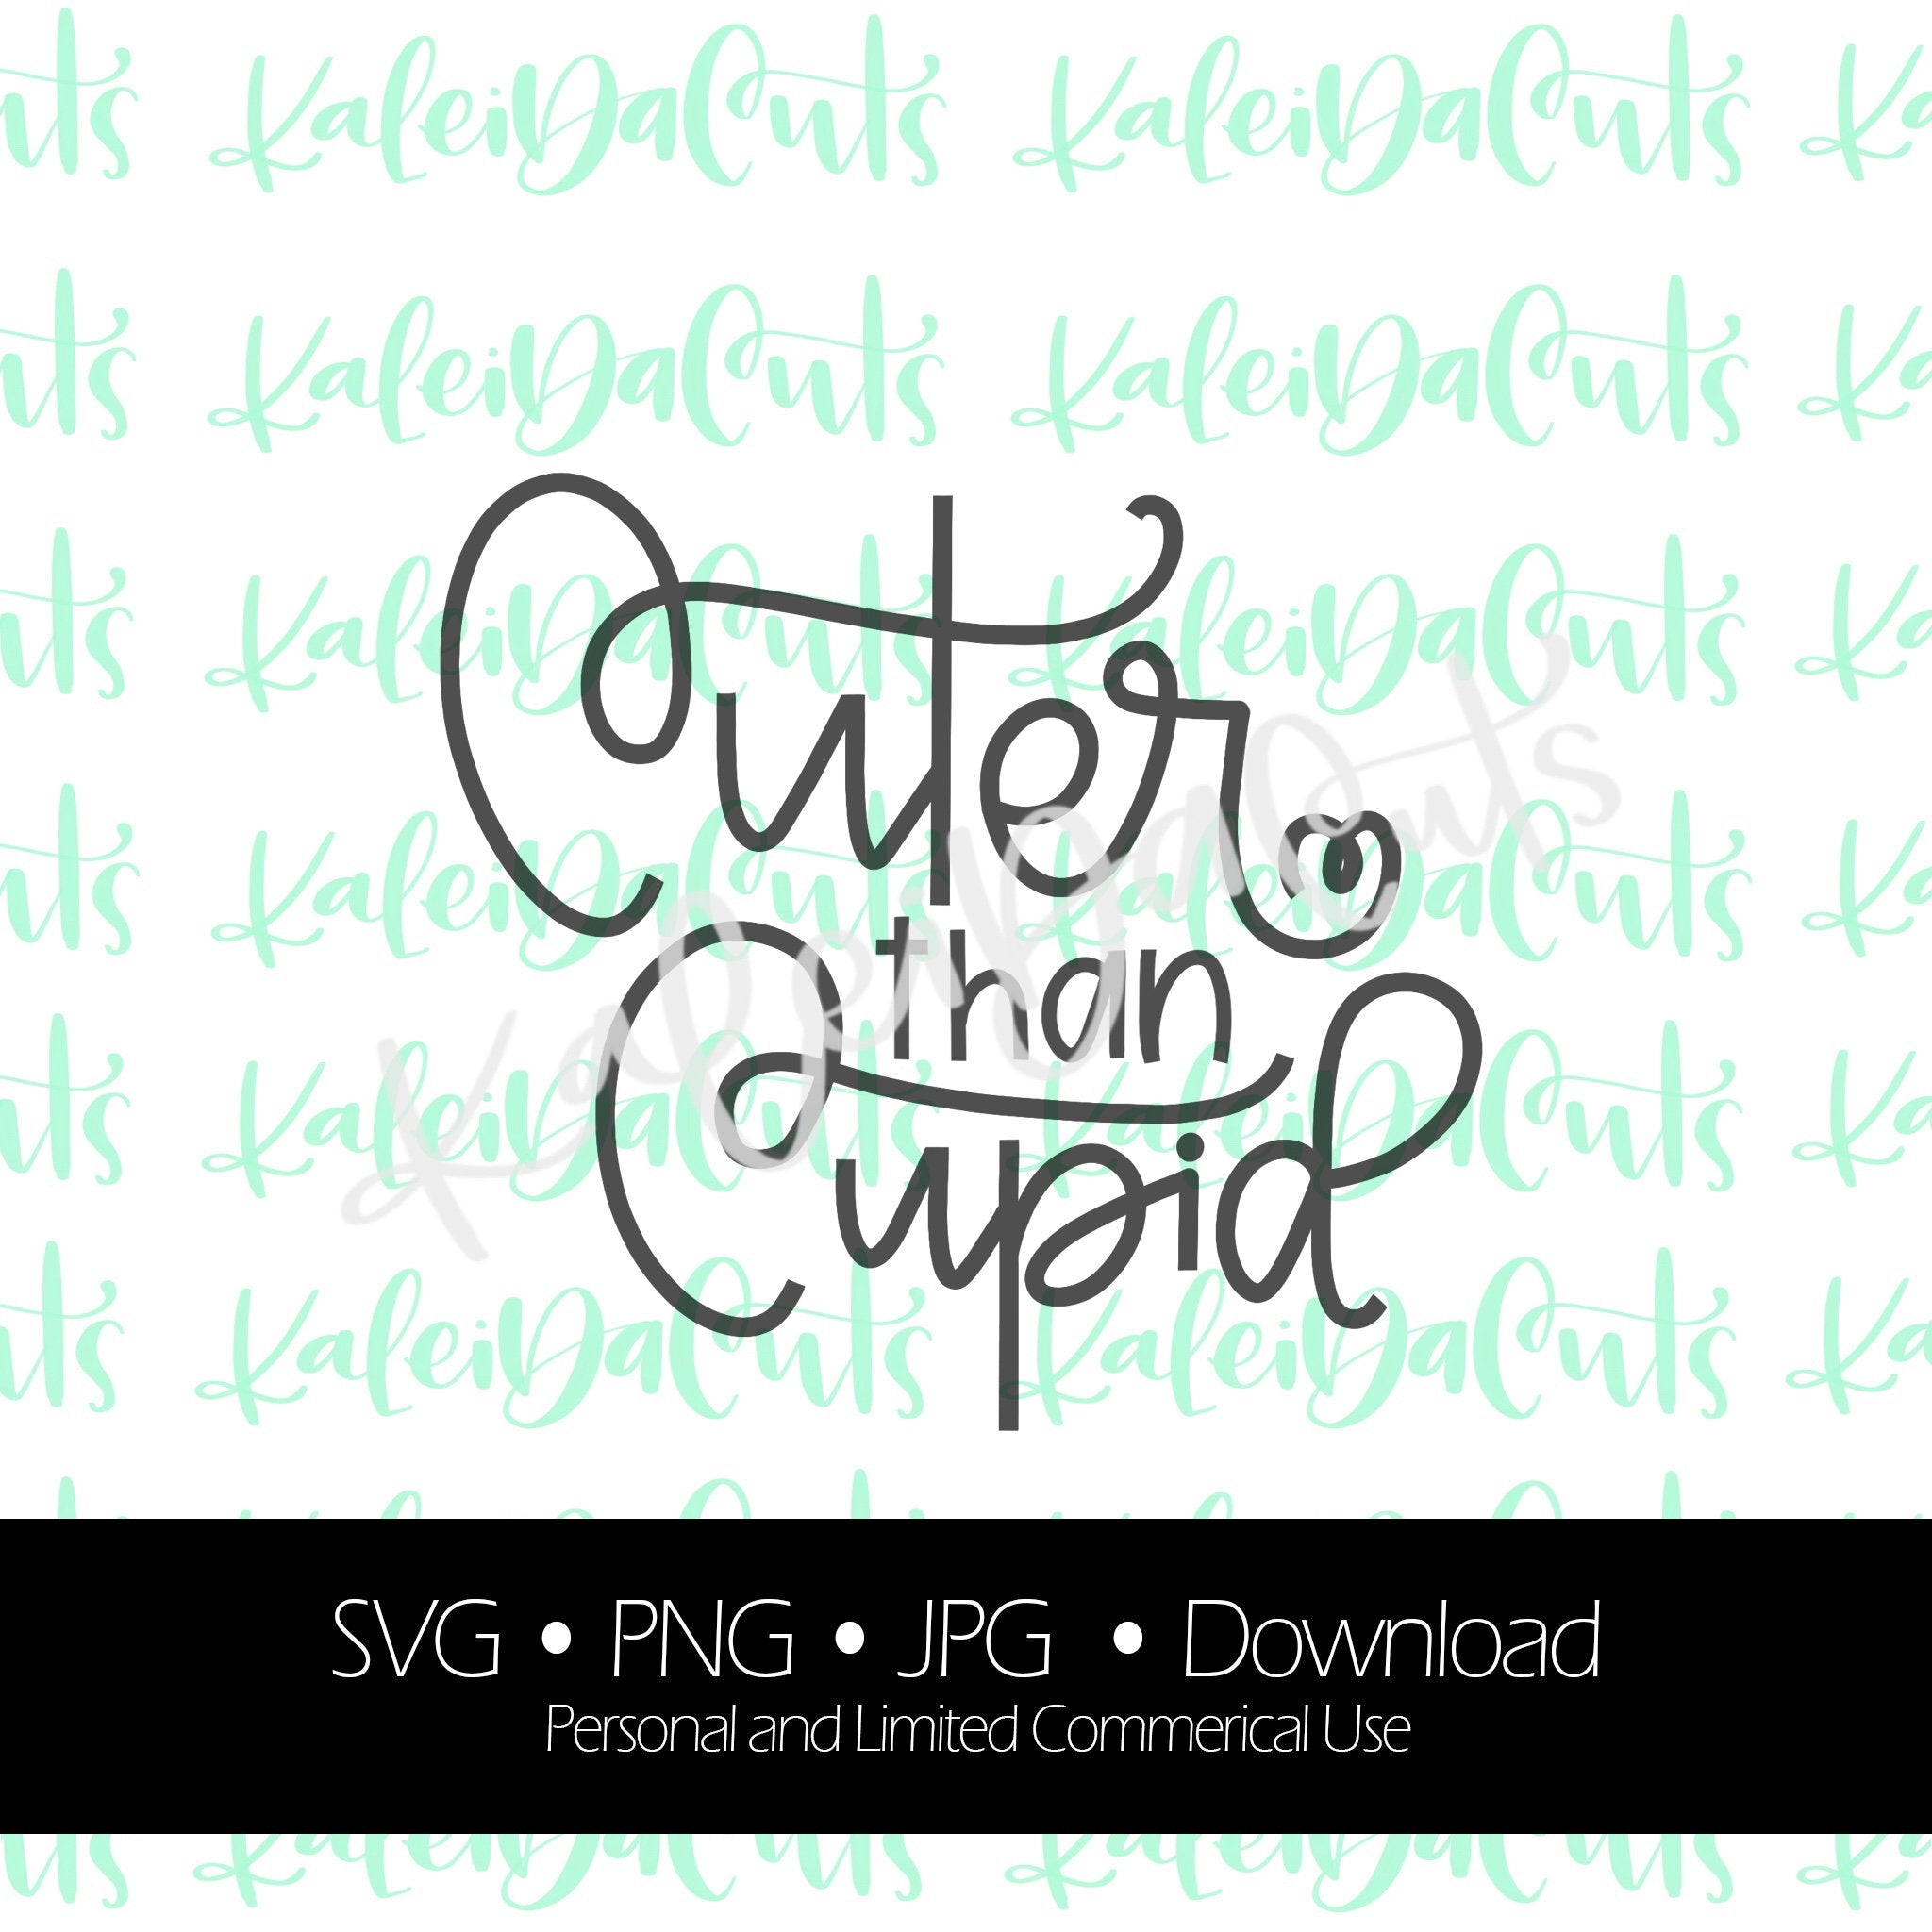 Cuter Than Cupid Digital Download Svg Personal And Limited Commercia Kaleidacuts